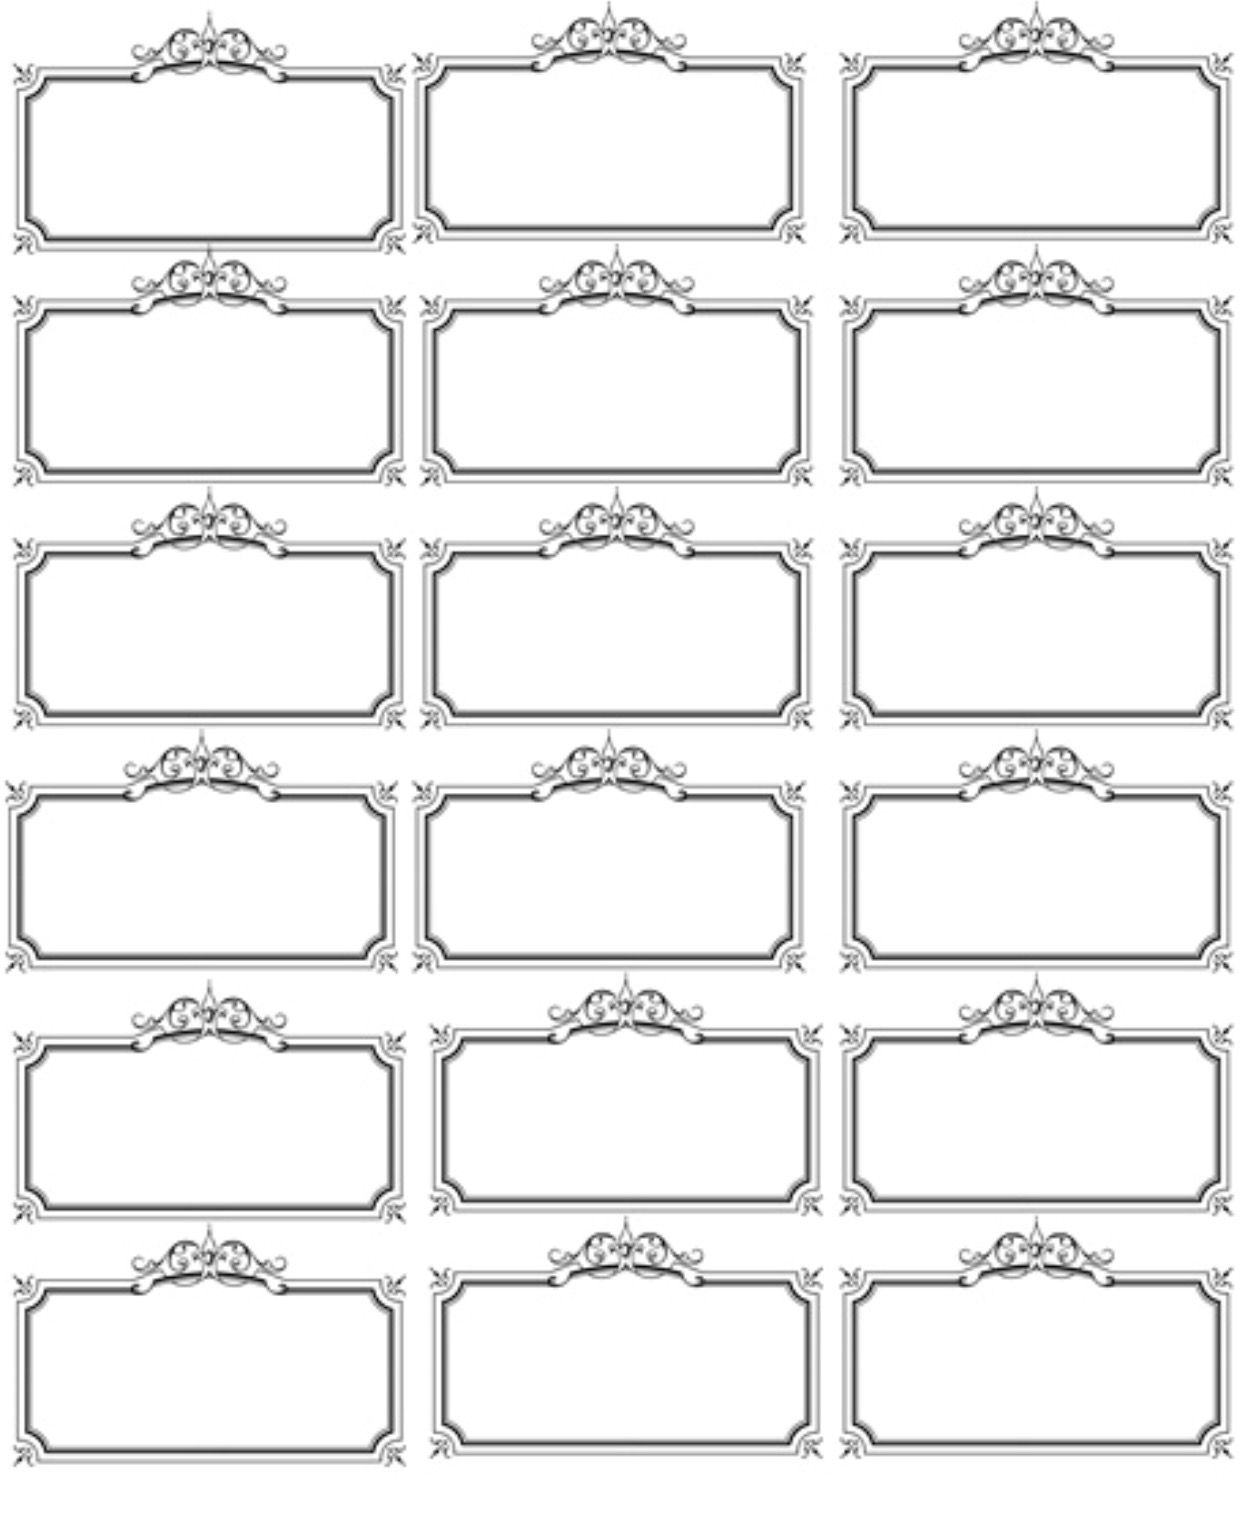 Pin By Dears Nov On Labels Printable Label Templates Labels Printables Free Name Tag Templates